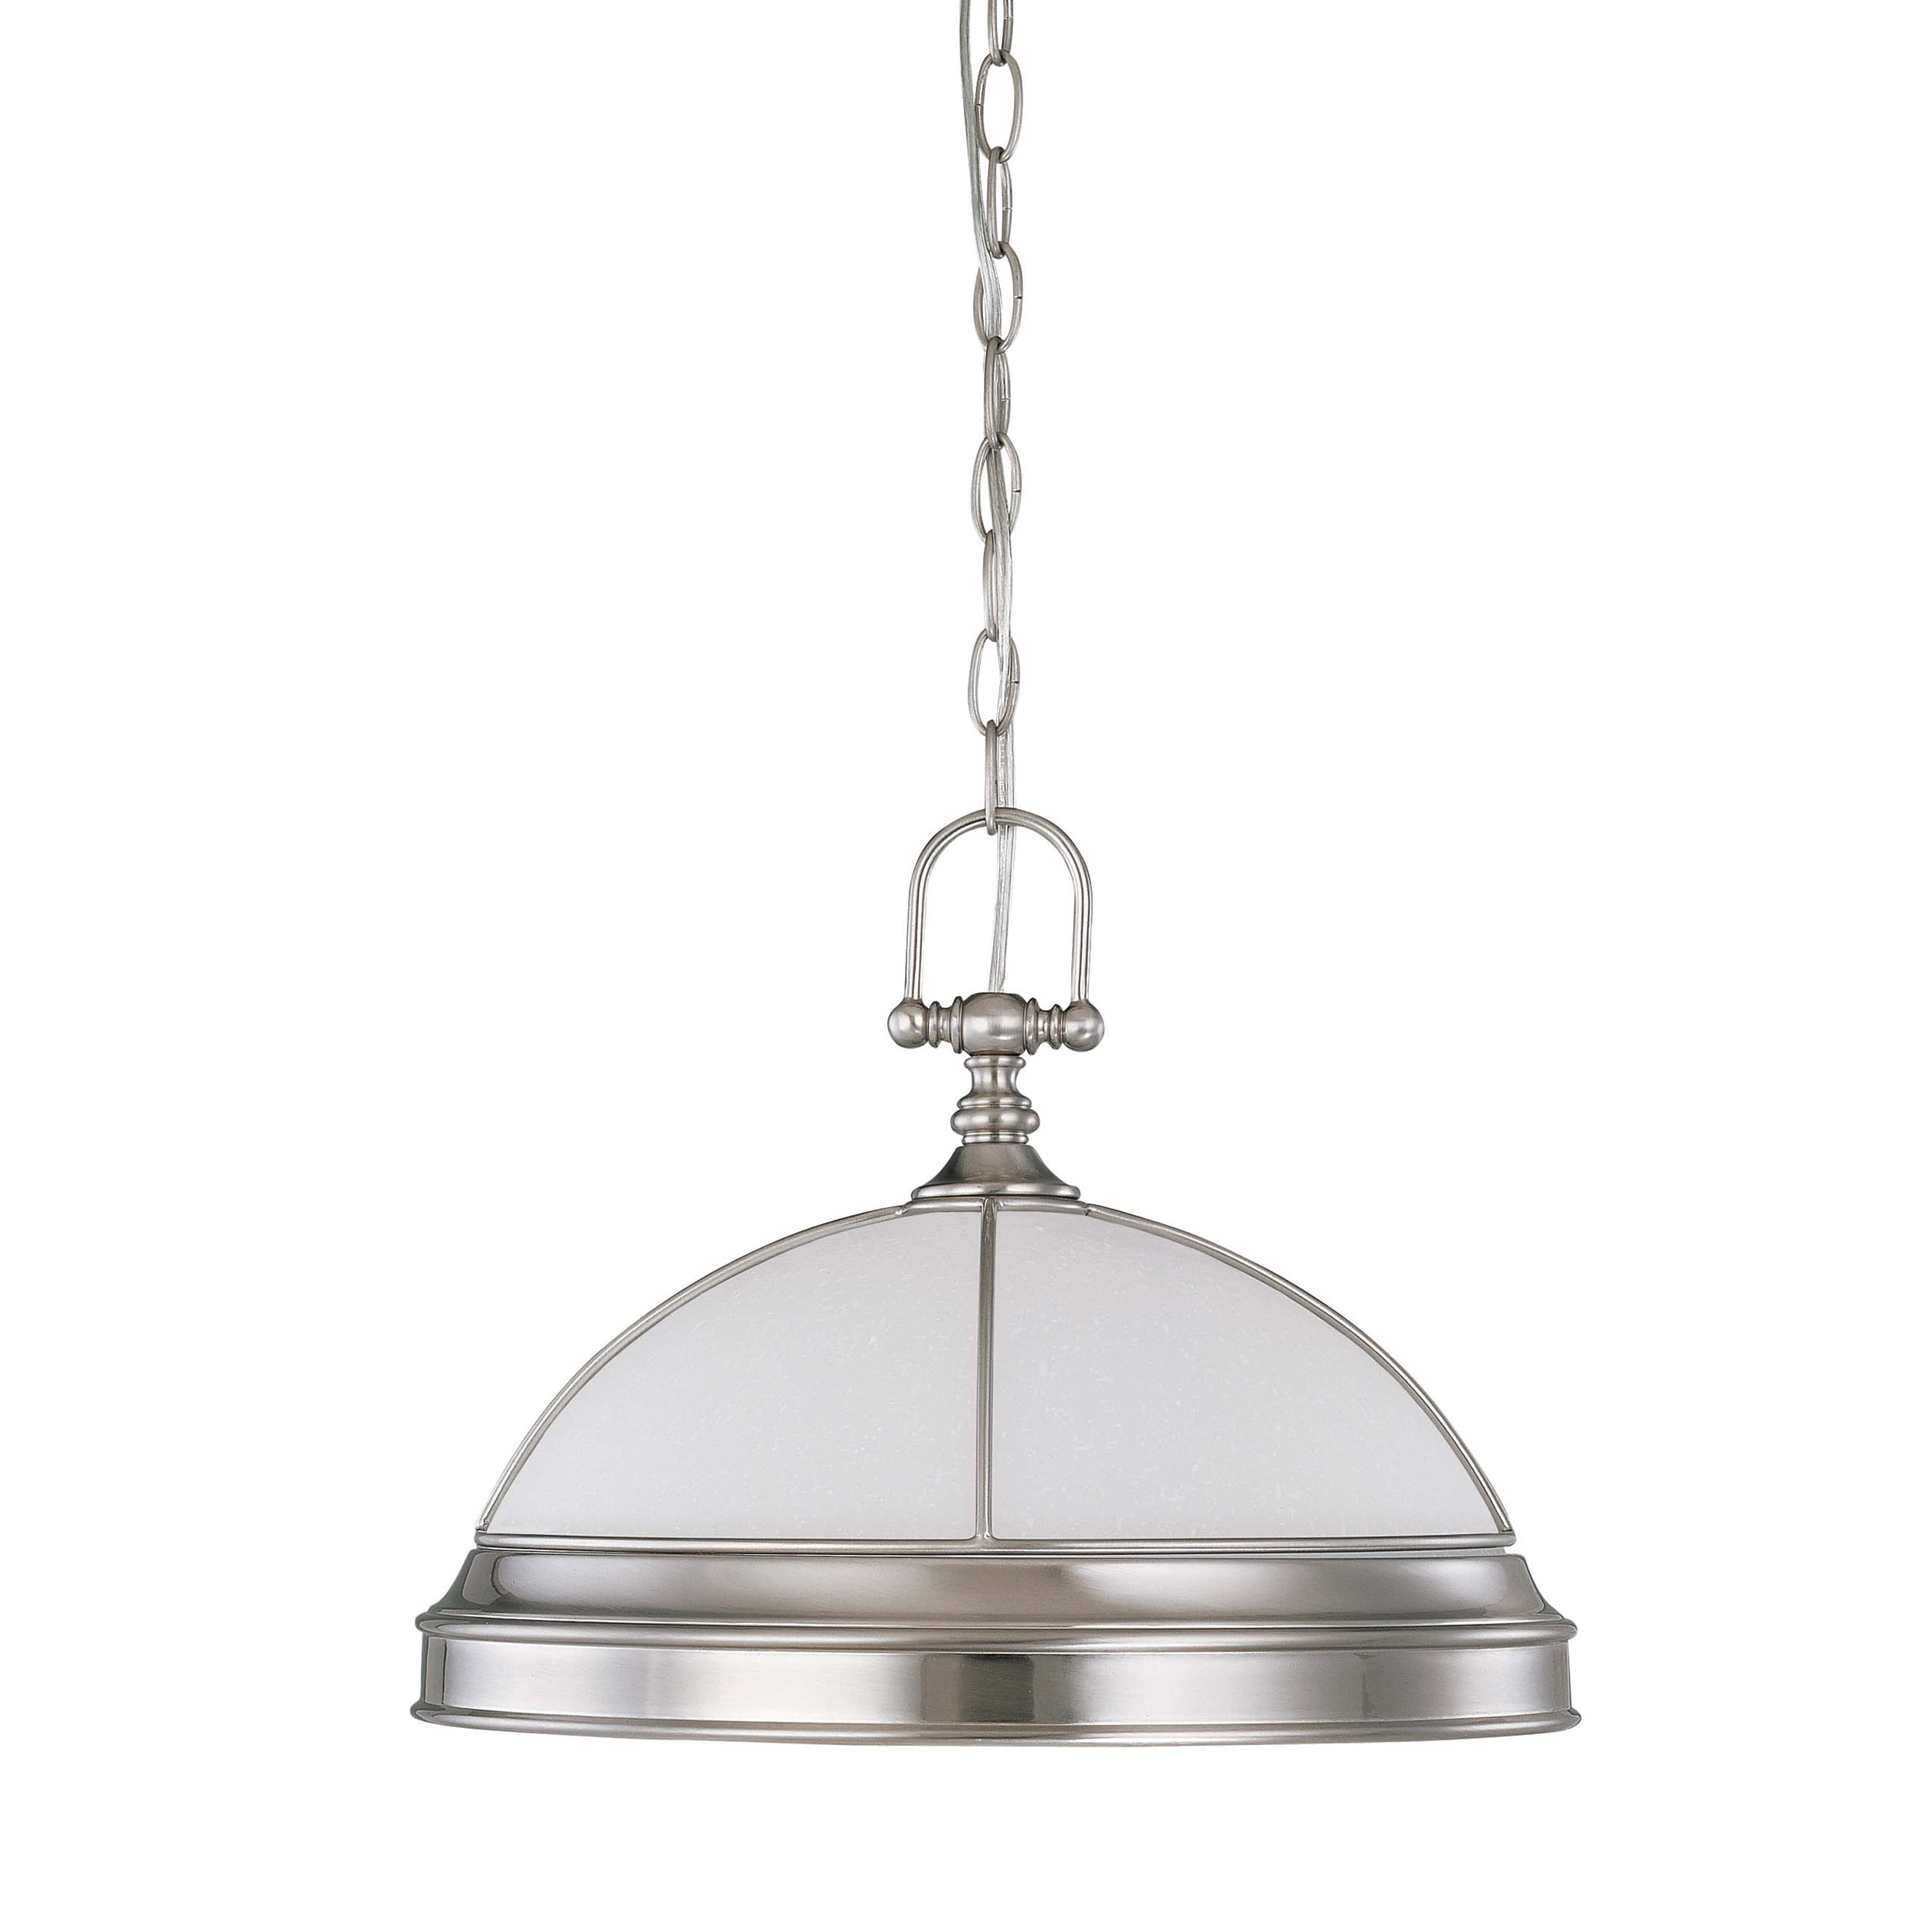 Salem 1 Light Brushed Nickel With Frosted Linen Glass Hanging Dome - Thumbnail 0